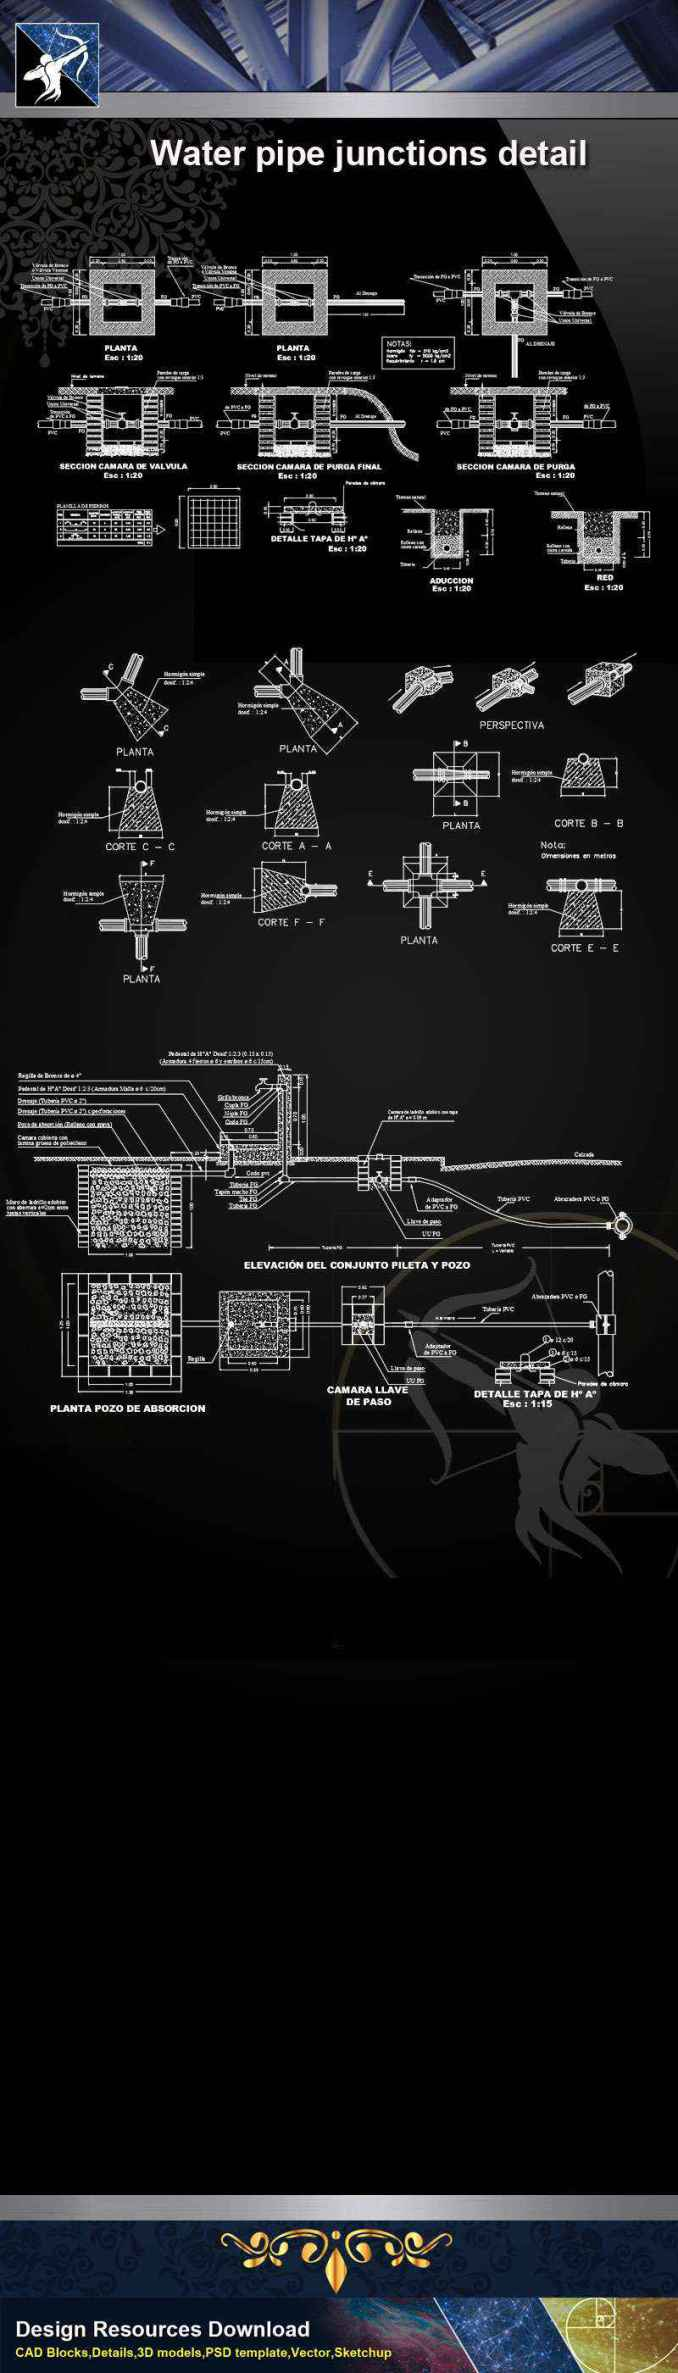 【Architecture CAD Details Collections】Water pipe junctions detail,Sanitations CAD Details